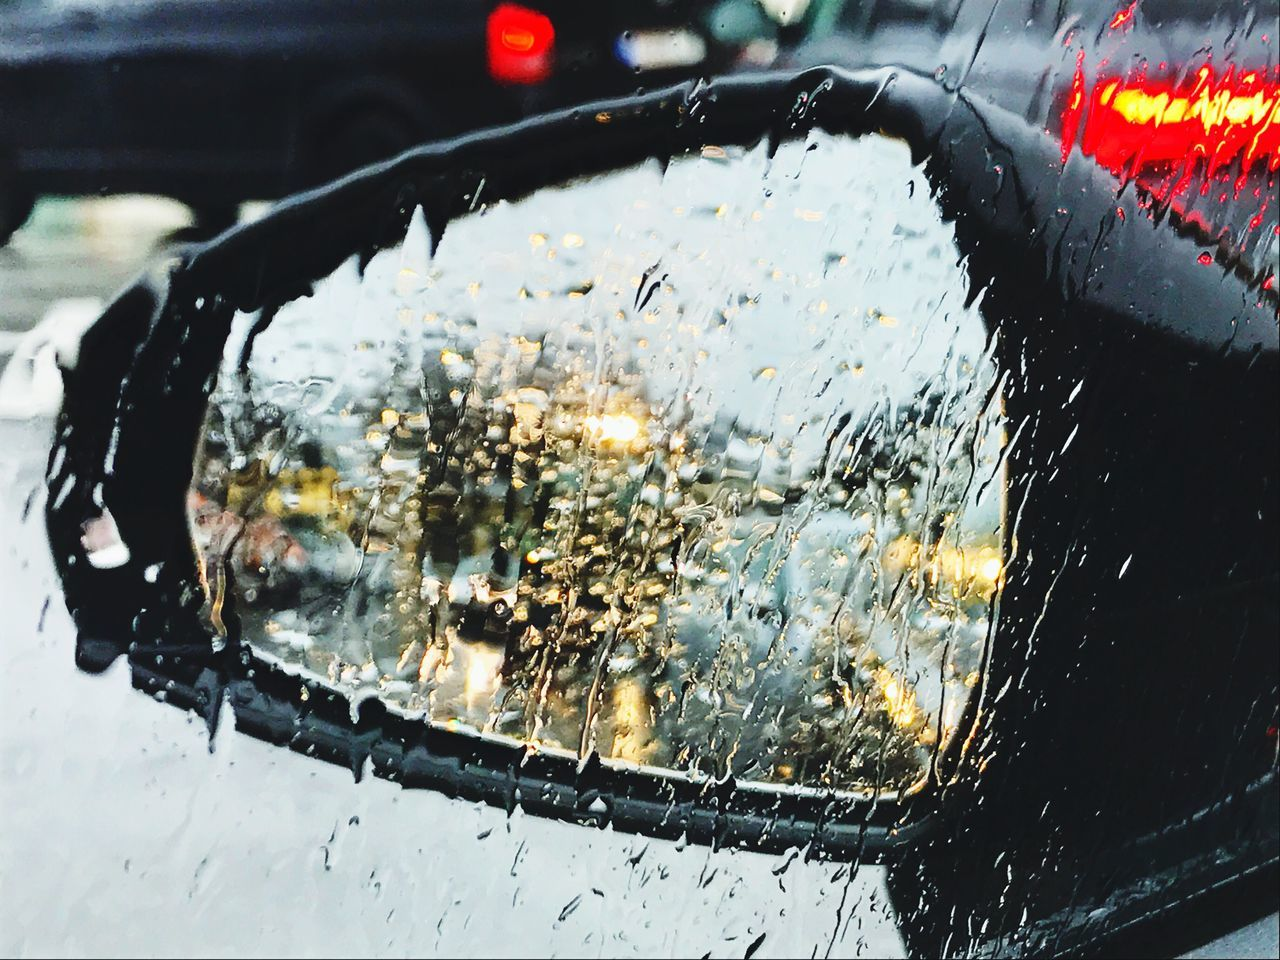 it's a rainy day today Raindrops Car Side-view Mirror Rain Rainy Days Driving Reflection Traffic Brake Lights